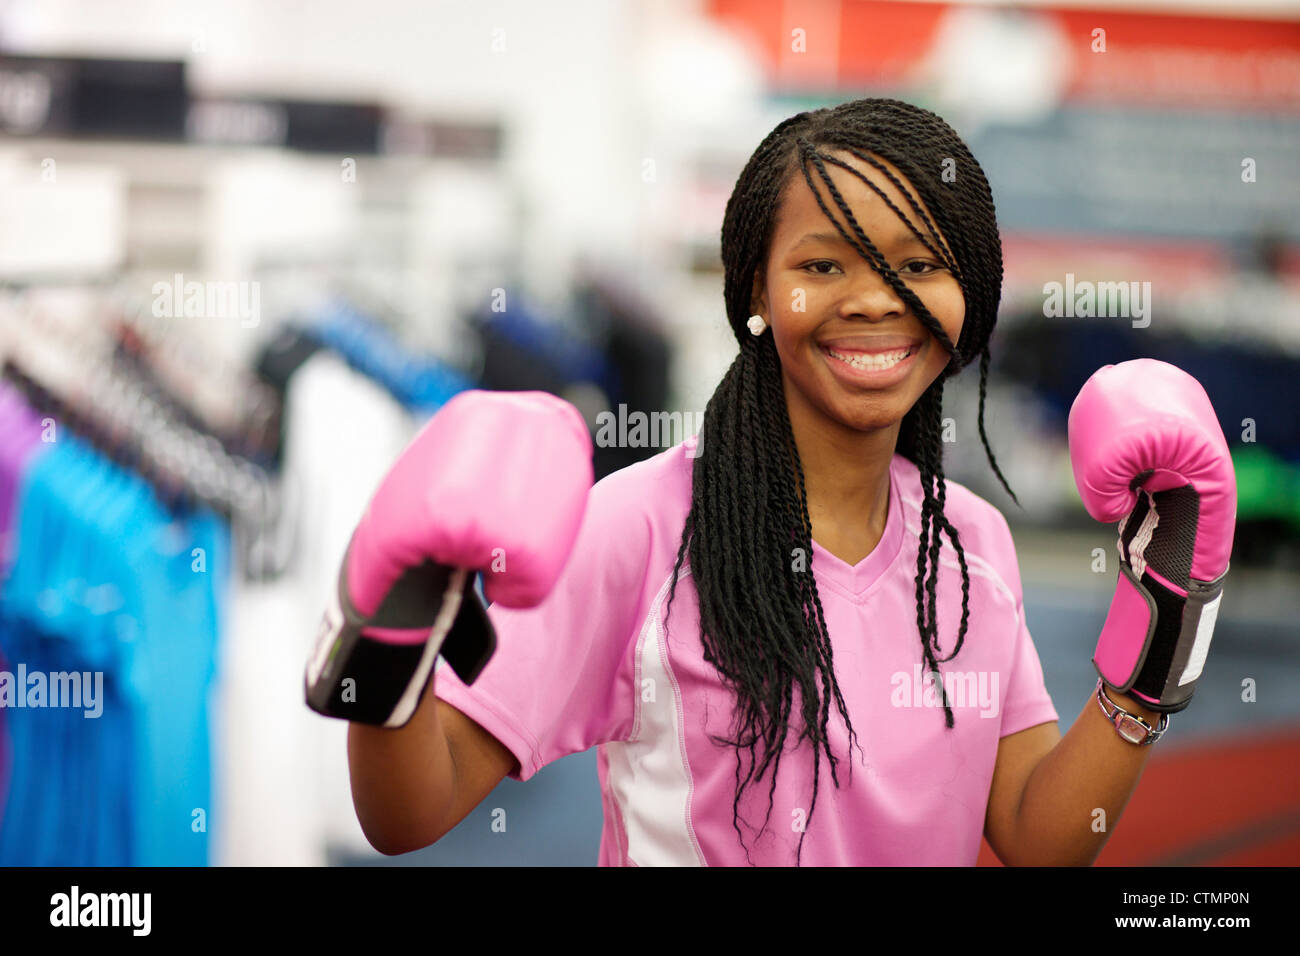 A young woman wearing boxing gloves and looking at the camera, Pietermaritzburg, KwaZulu-Natal, South Africa Stock Photo